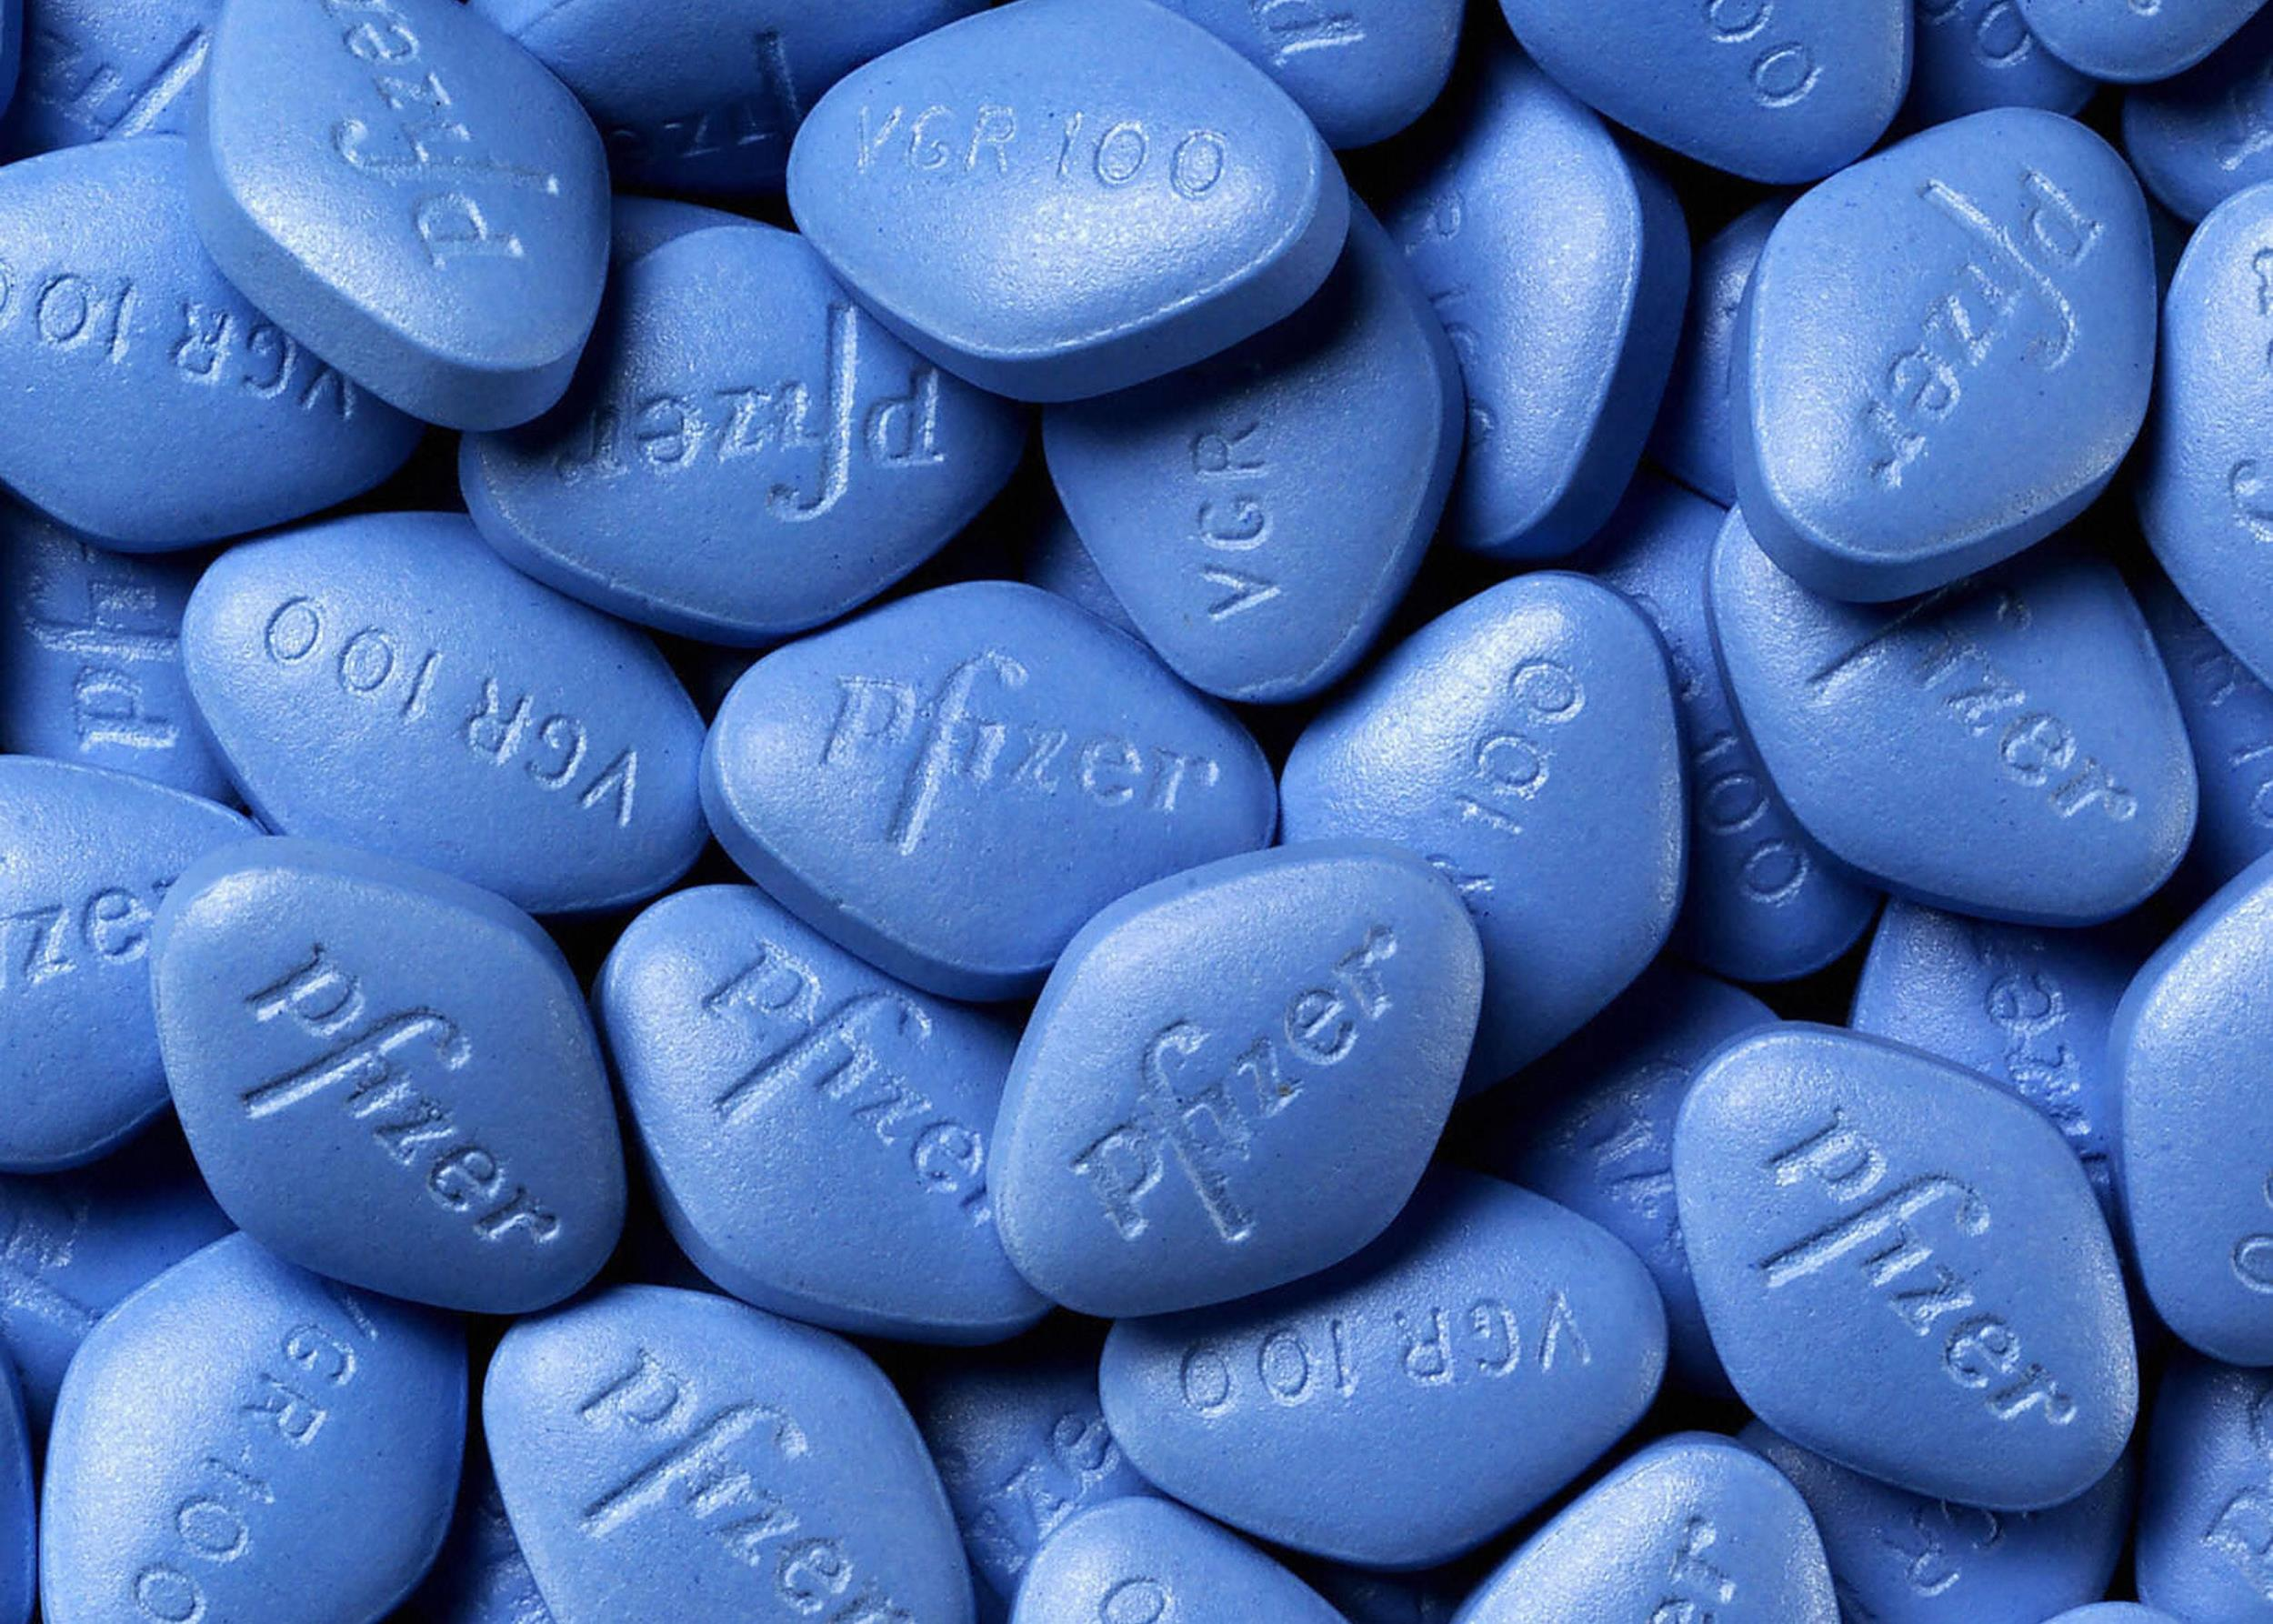 Viagra May Boost Risk of Deadly Skin Cancer, Study Finds